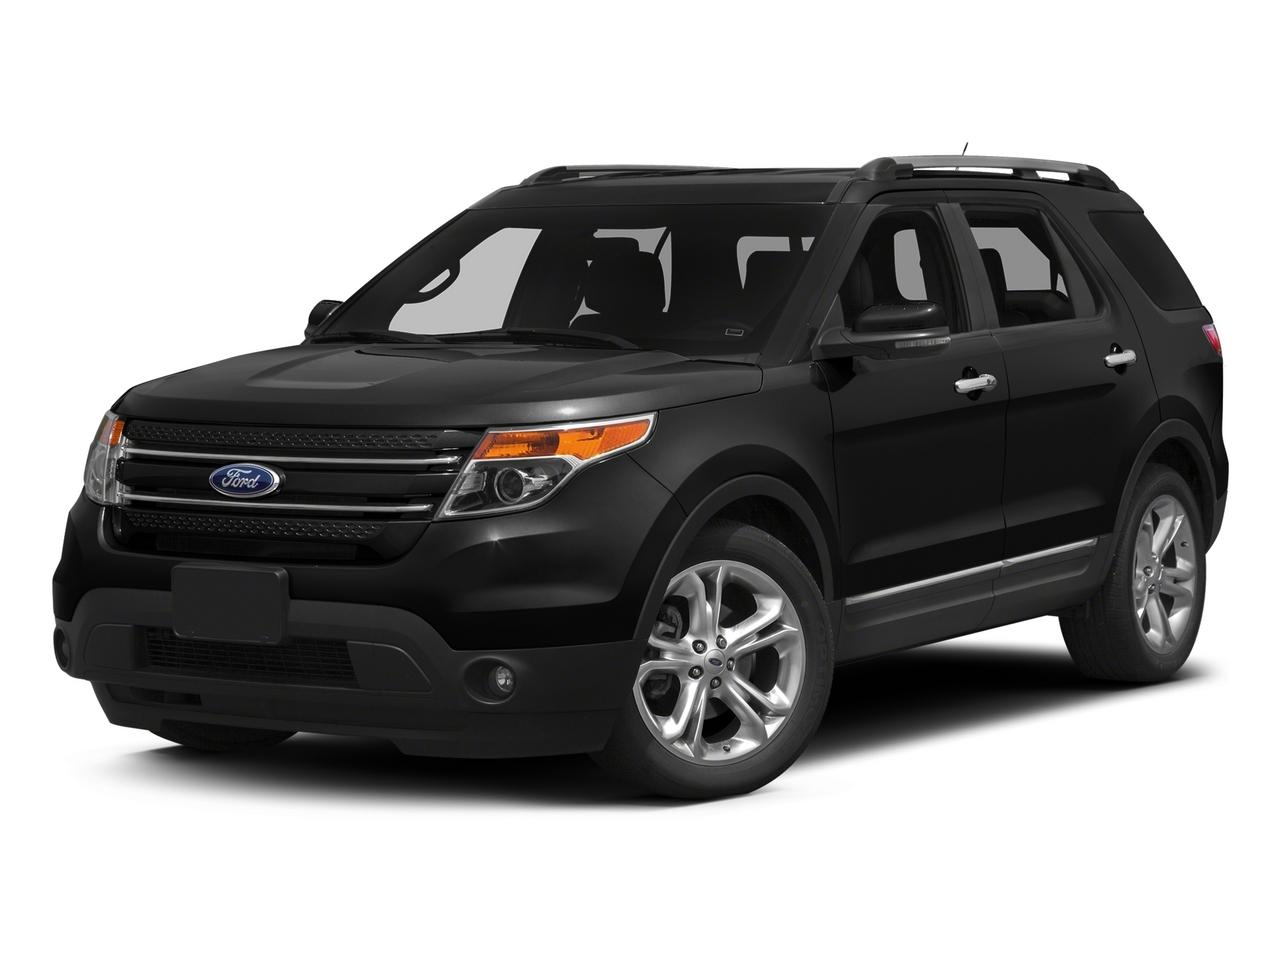 2015 Ford Explorer Vehicle Photo in TEMPLE, TX 76504-3447